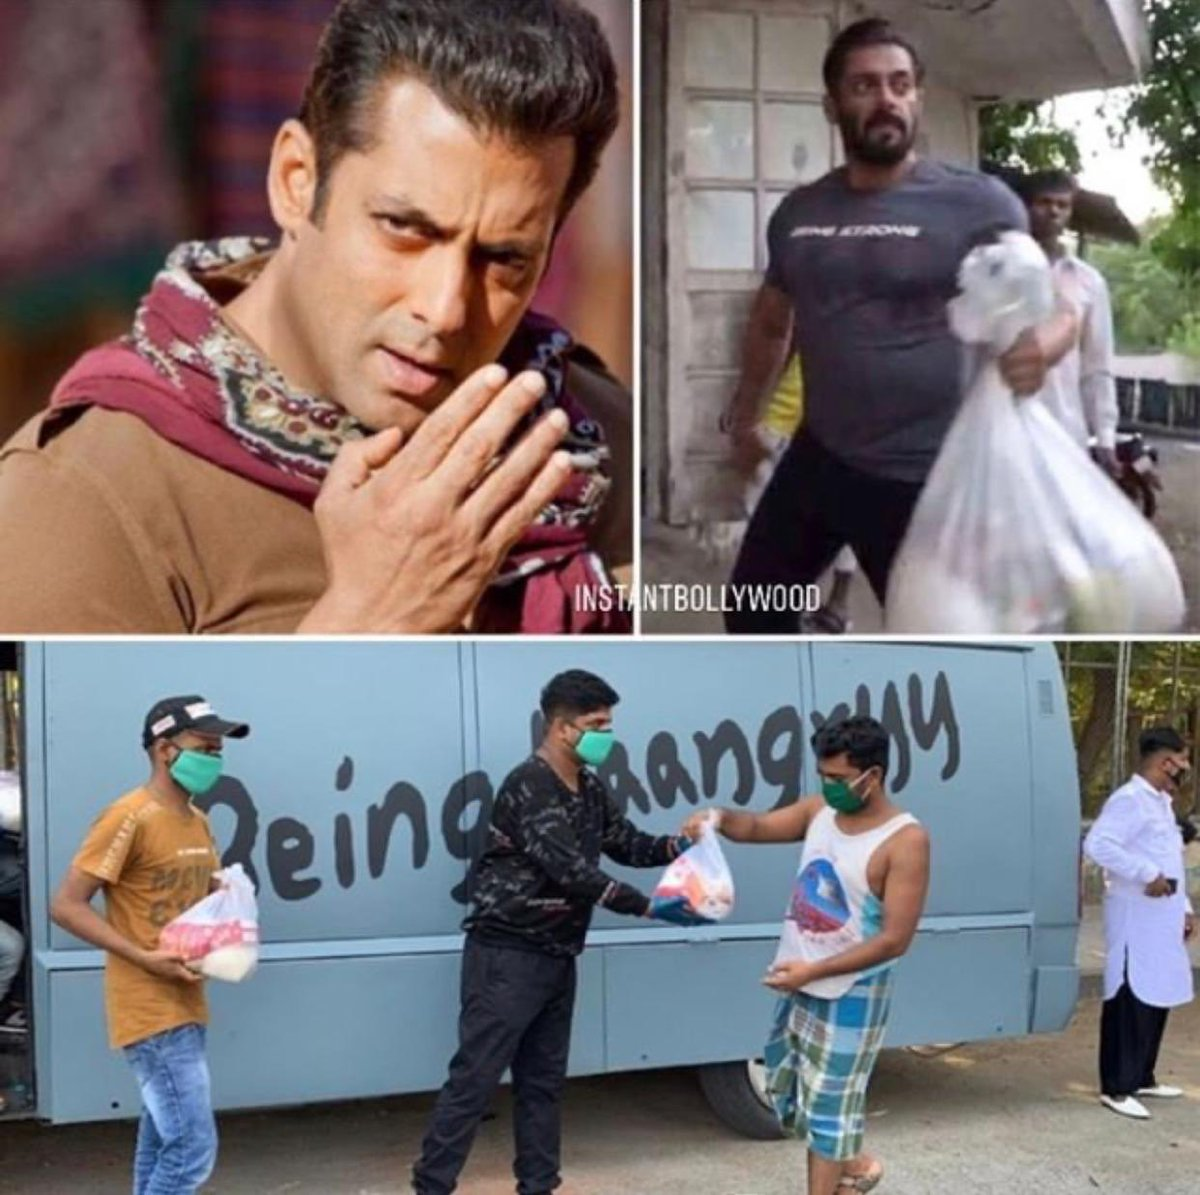 #BhaiBhaiHitsFastest2MLikes No add !!! No promotion !!! No PR stunts !!! No social media activity !!! No Trend !!! Yet Bhai is Bhai.... God is Great !!! Love n prayers always !!! Salman bhai fan club family goes out to each one of you !!!